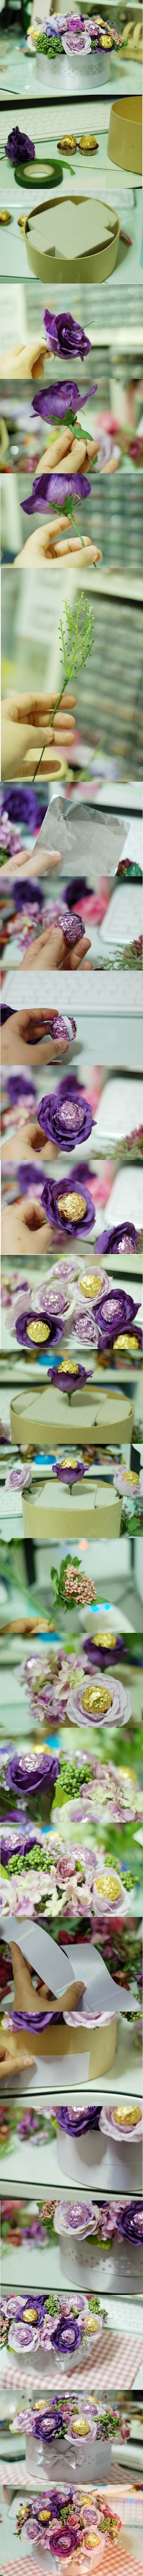 DIY Valentine's Day Chocolate Flower Bouquet....Best Homemade Valentines Gifts for Her To Express Your Love #DIYCrafts